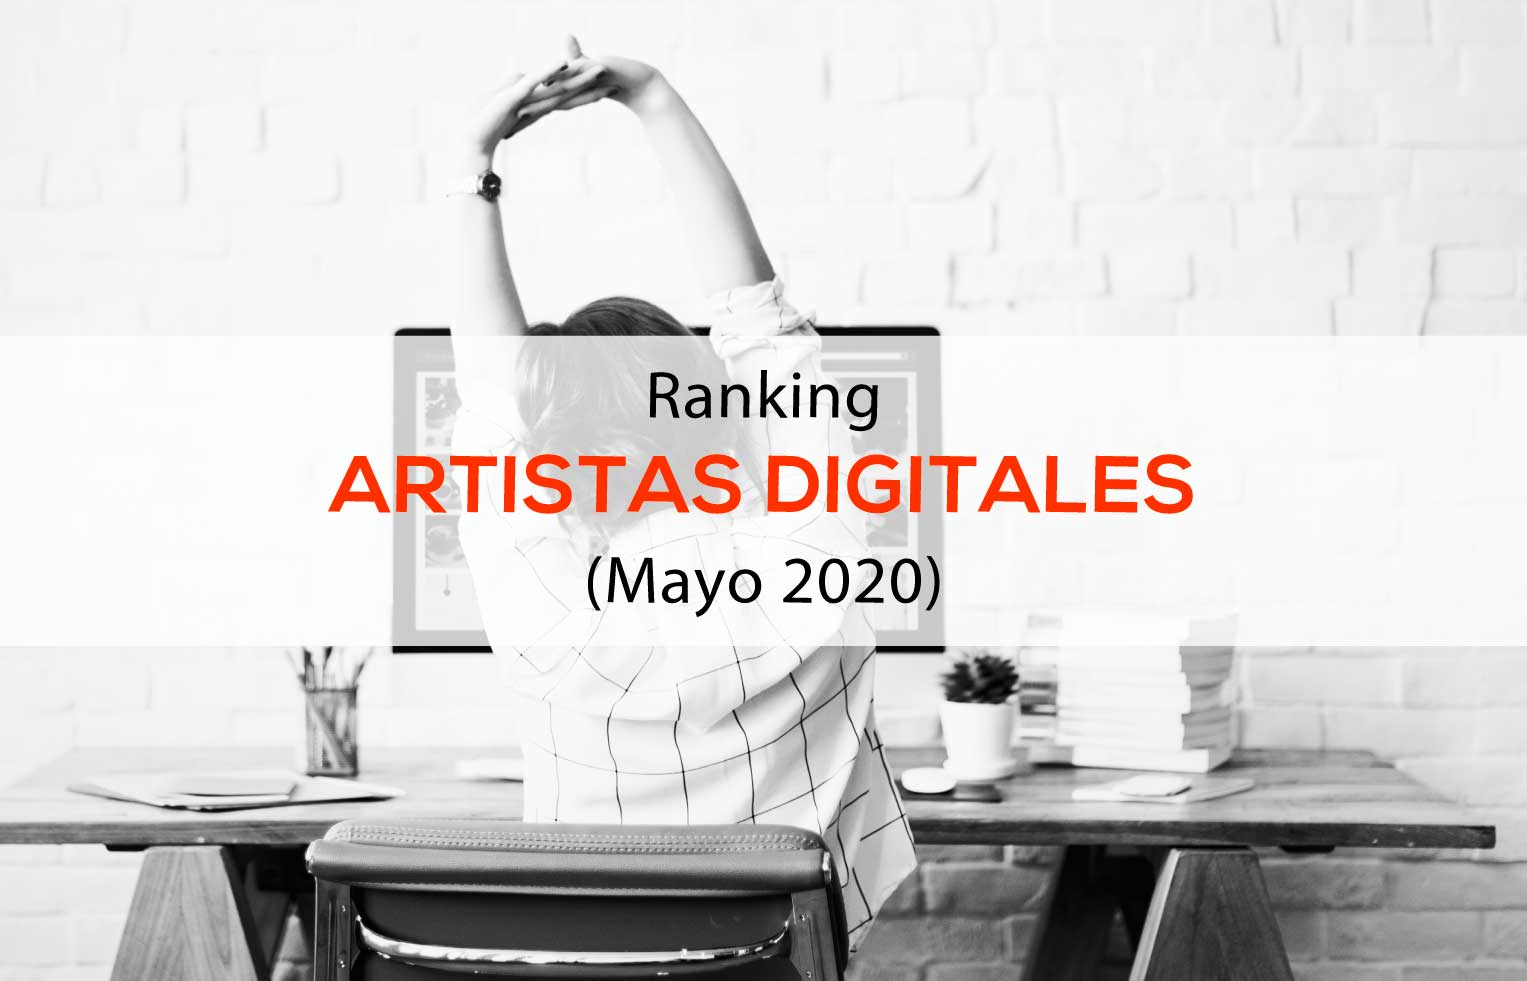 Ranking Artistas digitales